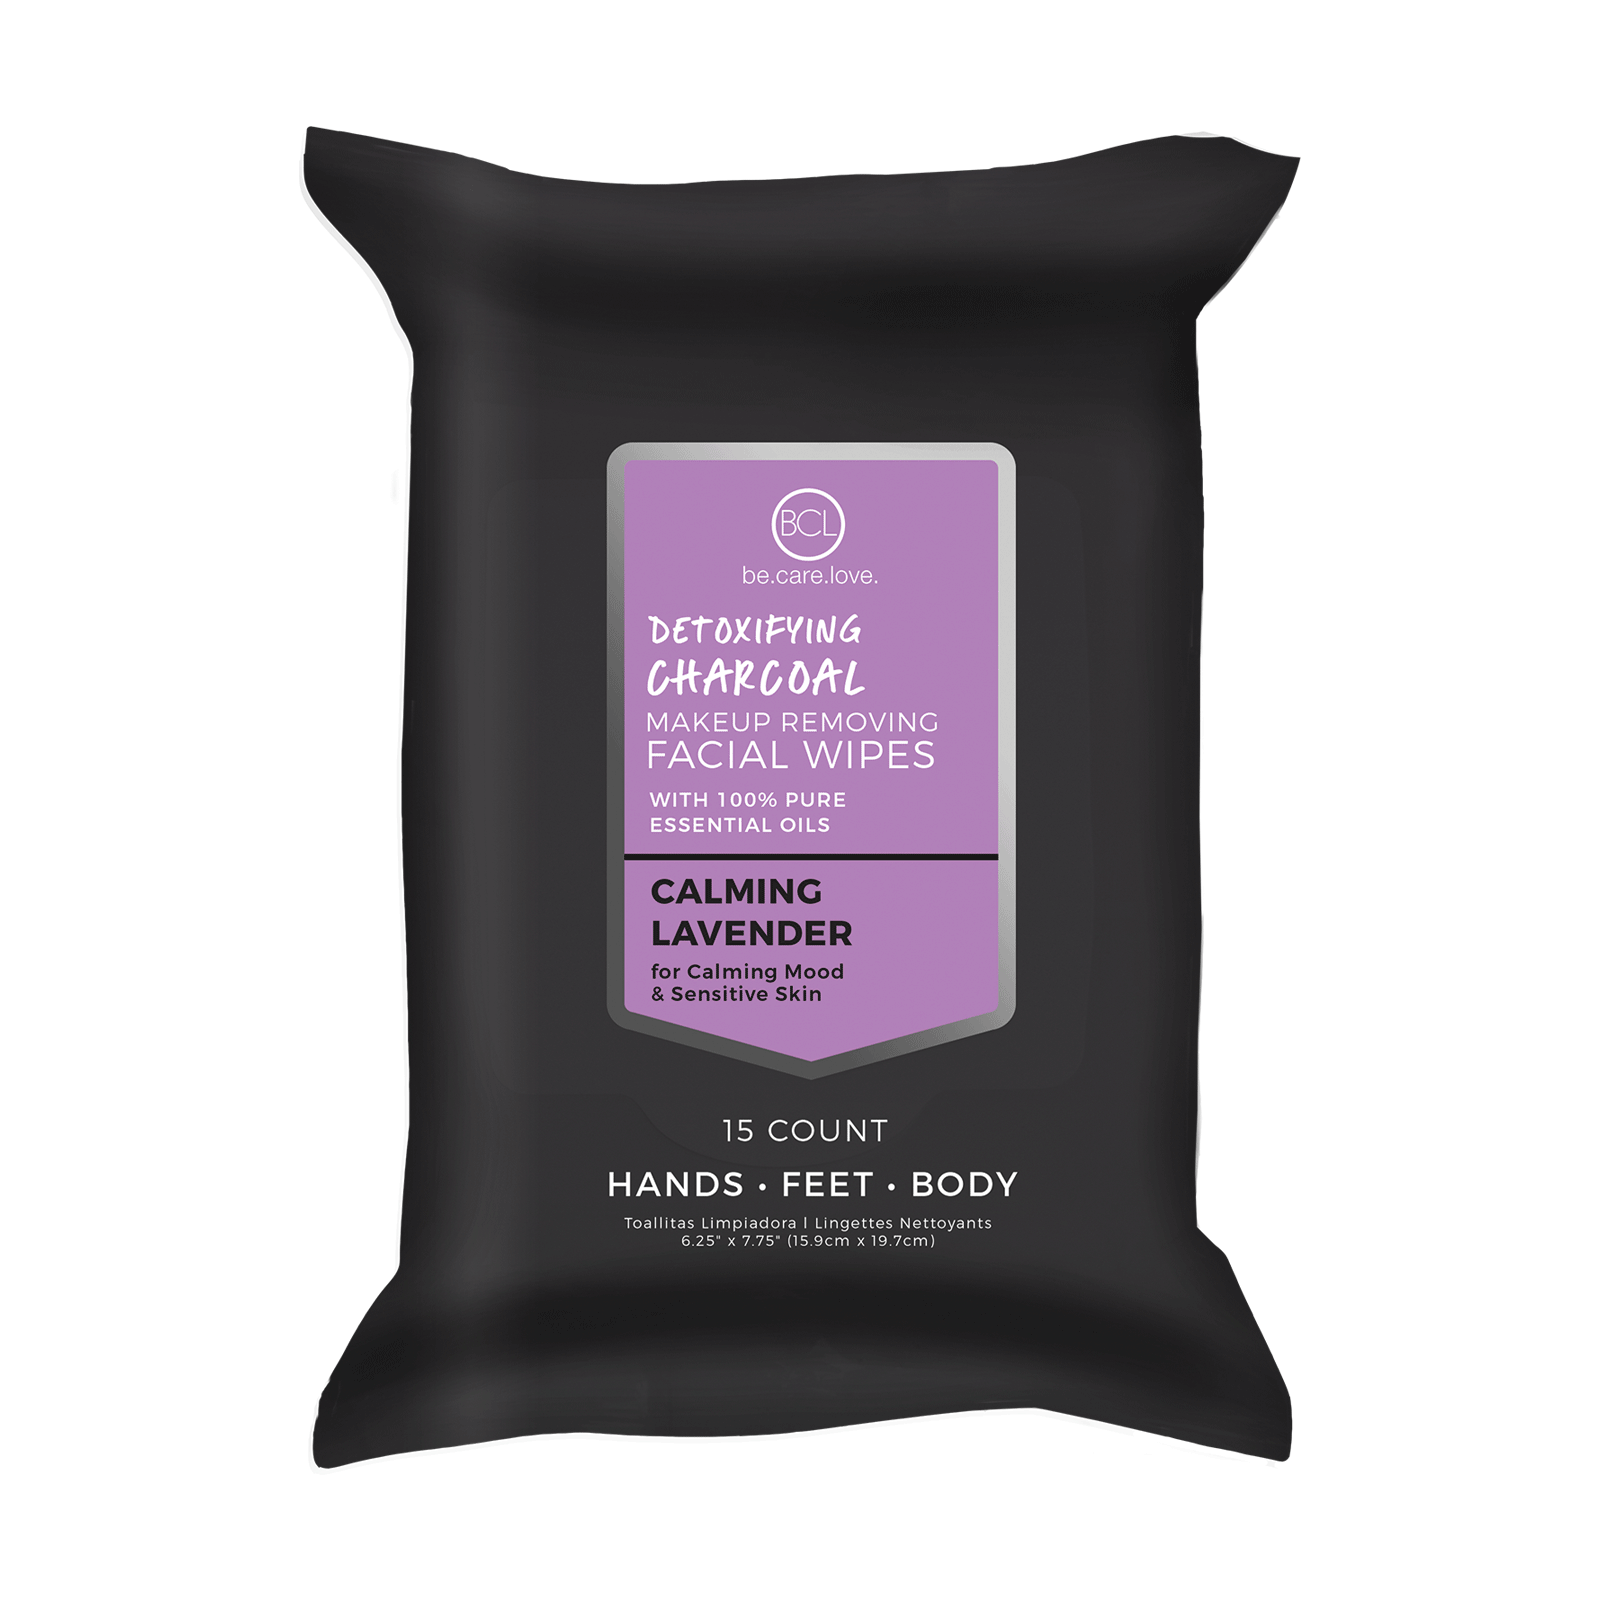 Lavender Charcoal Make-Up Removing Facial Wipes - 15 Count